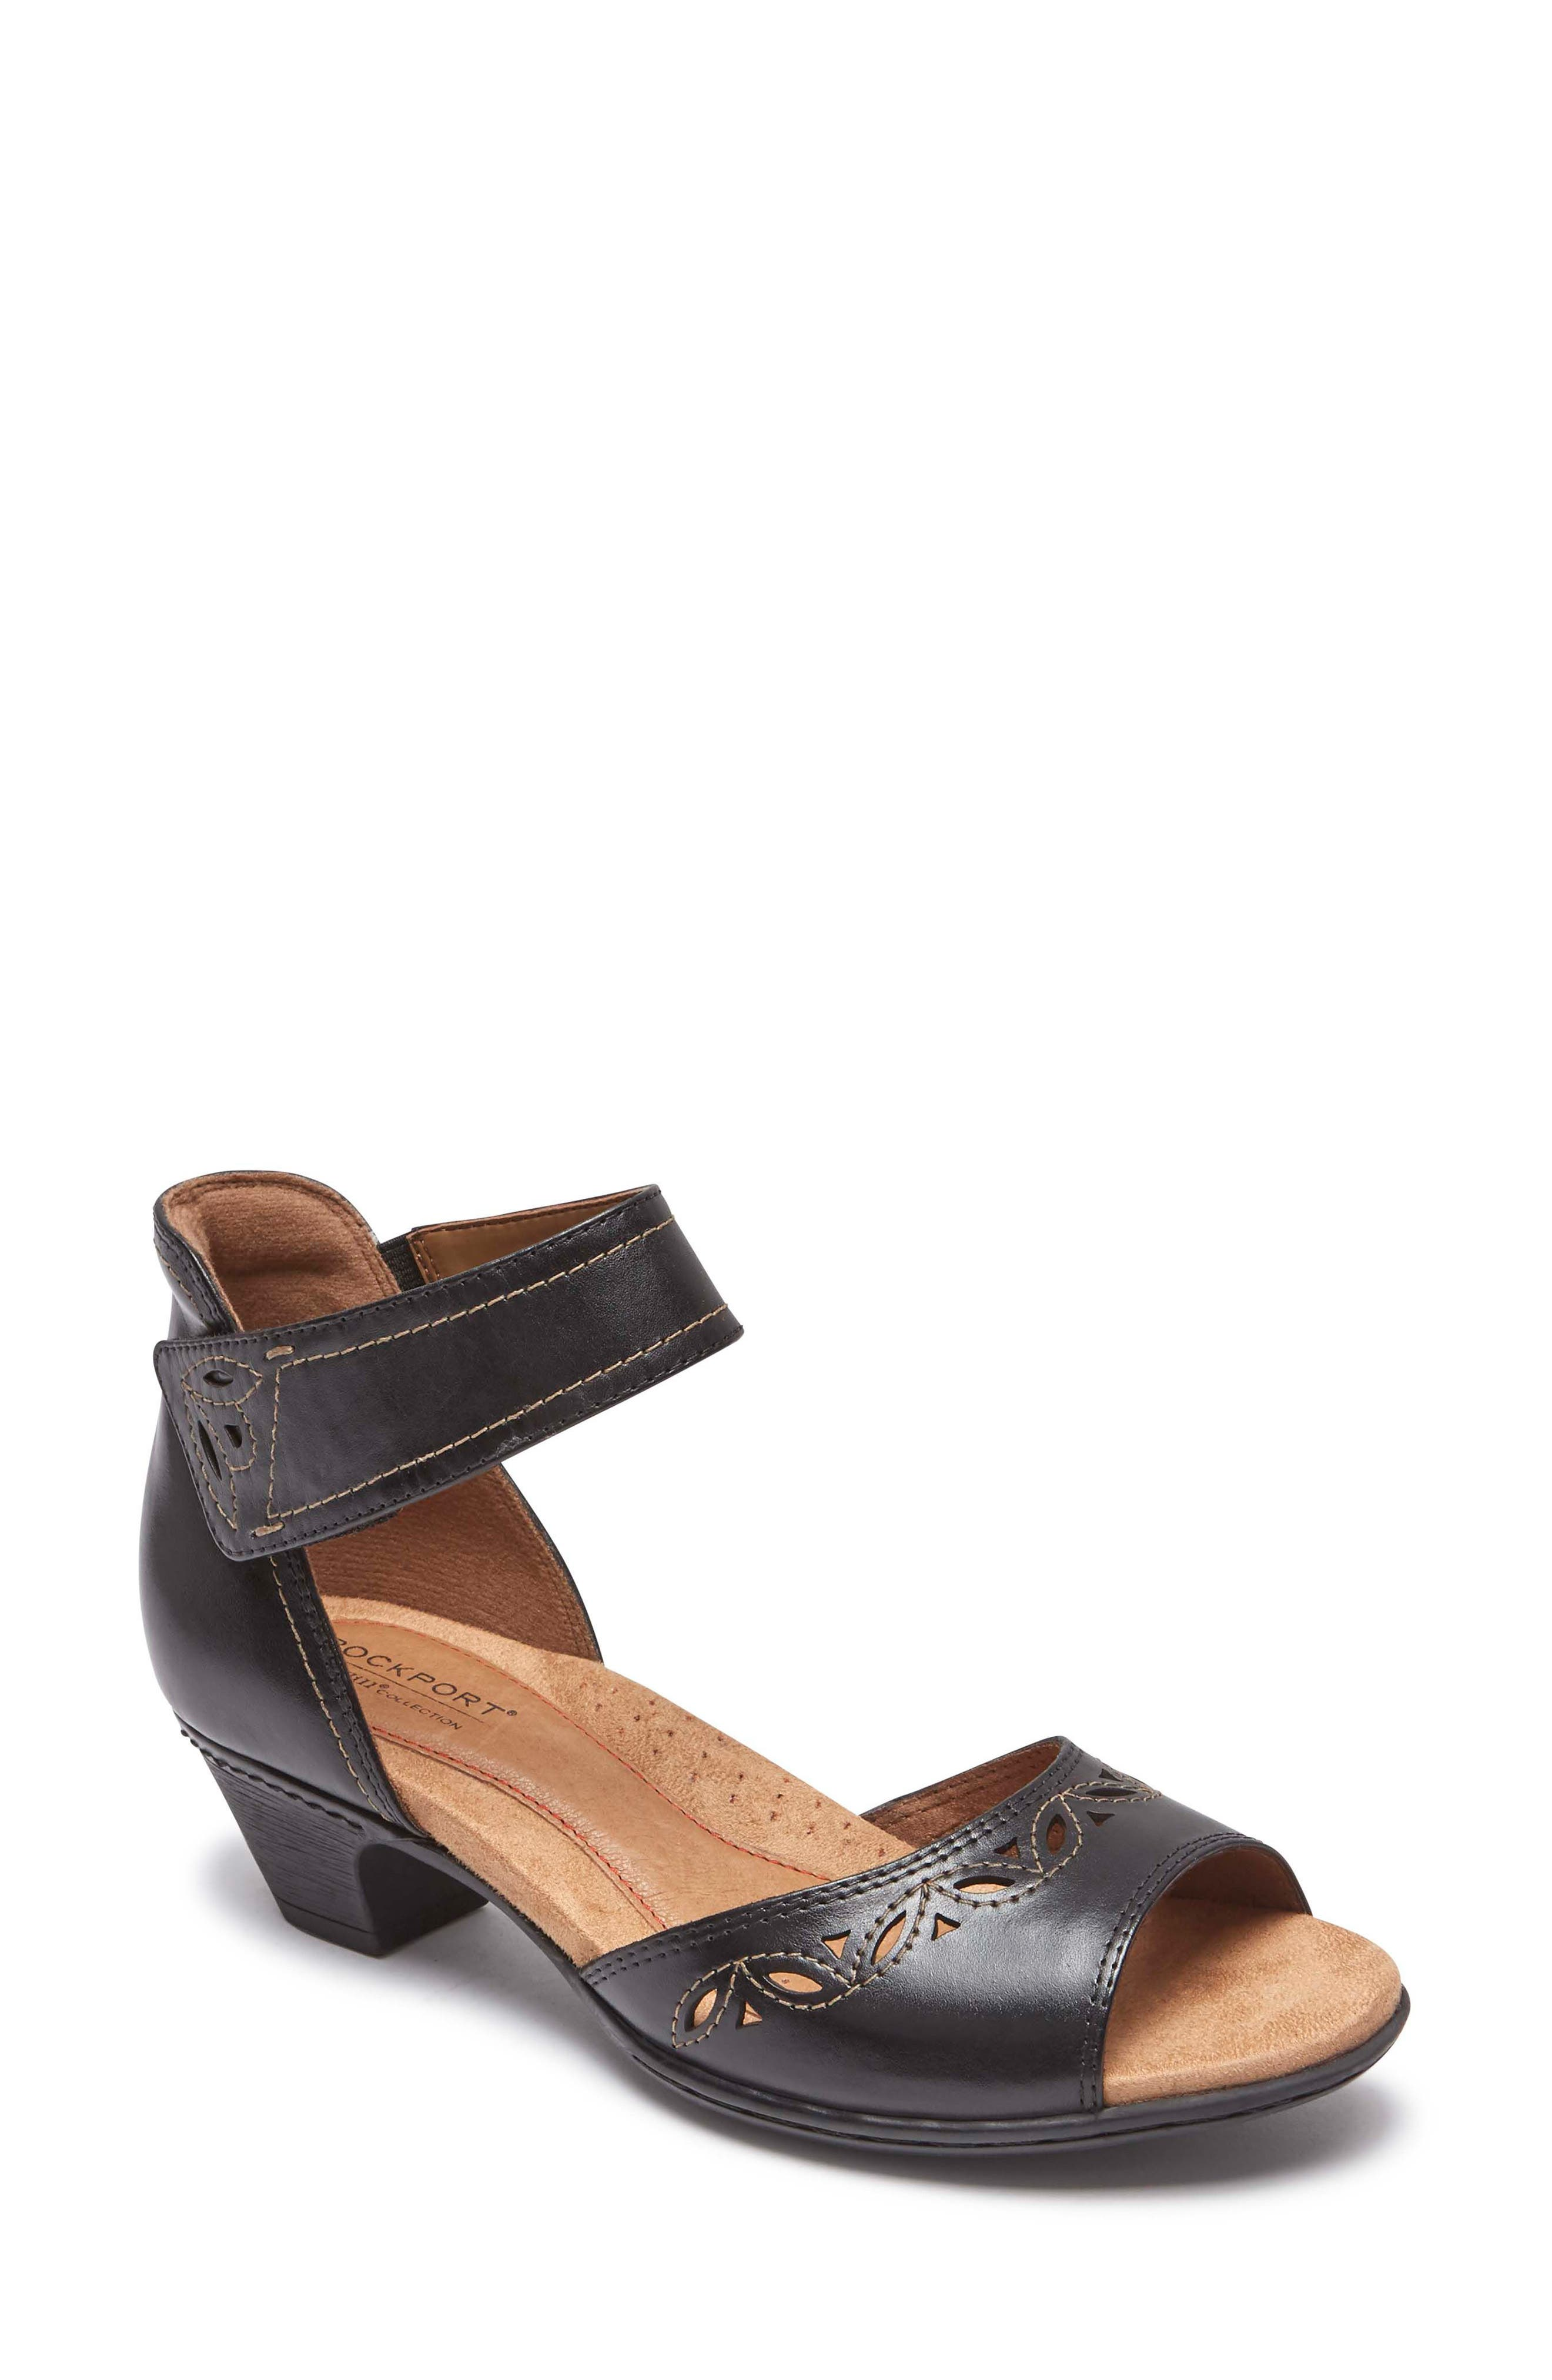 Rockport Cobb Hill Abbott Perforated Sandal (Women)